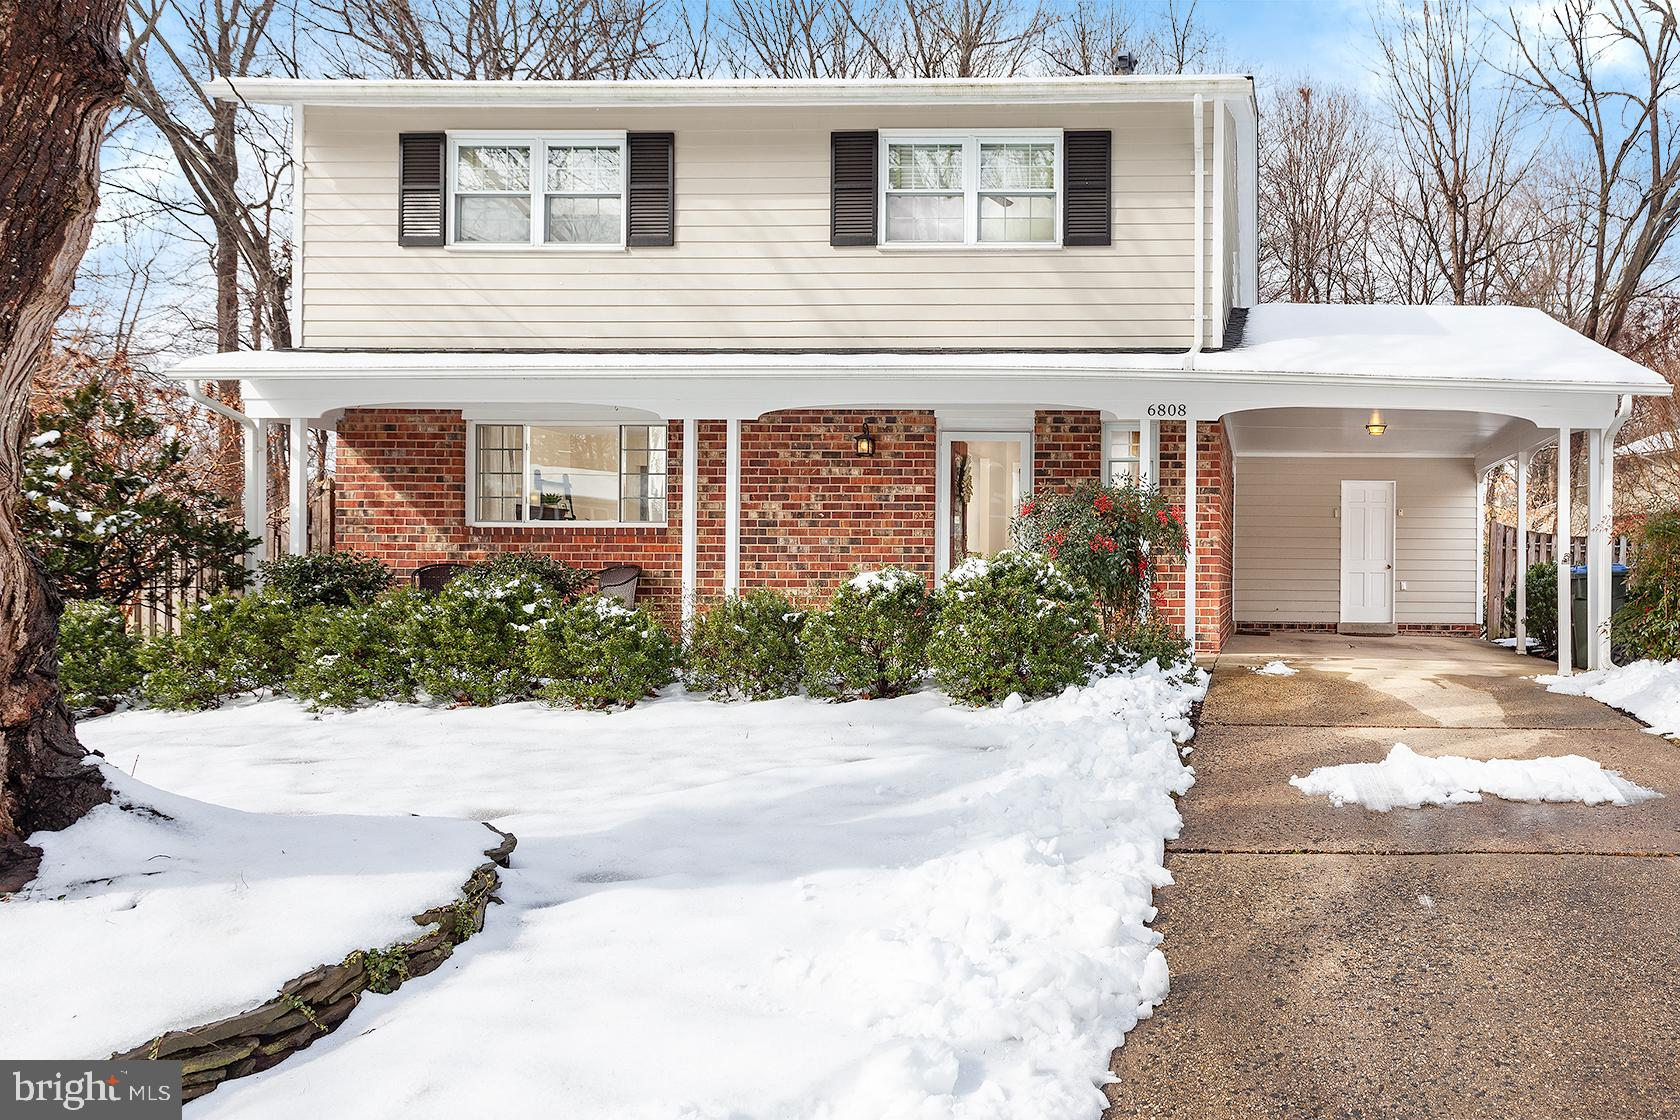 This meticulously maintained three-level home with a functional floorplan is located in the desirable neighborhood of West Springfield Village. The home boasts gleaming hardwood floors, a sun-filled open kitchen with silestone countertops and a beautiful flagstone back patio. Sliding doors open to the back patio from the dining room for entertaining, grilling, or simply relaxing. The basement is foam insulated, making it energy-efficient and comfortable. All four bedrooms on upper level. Large utility room, all baths updated, 2016 new roof, updated 200 AMP electrical panel, 2015 water heater. Only minutes away from the Capital Beltway, 395 and Interstate 95, providing easy access to Washington, DC. A short drive to NGA, Fort Belvoir and Franconia-Springfield Metro. Whole Foods Market and other conveniences only about 1.3 mi away. Hop on the Fairfax County Trail for running and biking. The peaceful neighborhood borders Pohick Valley Stream Park, which connects to Hidden Pond Nature Center. Located in the West Springfield High School pyramid. Walking distance to elementary school.